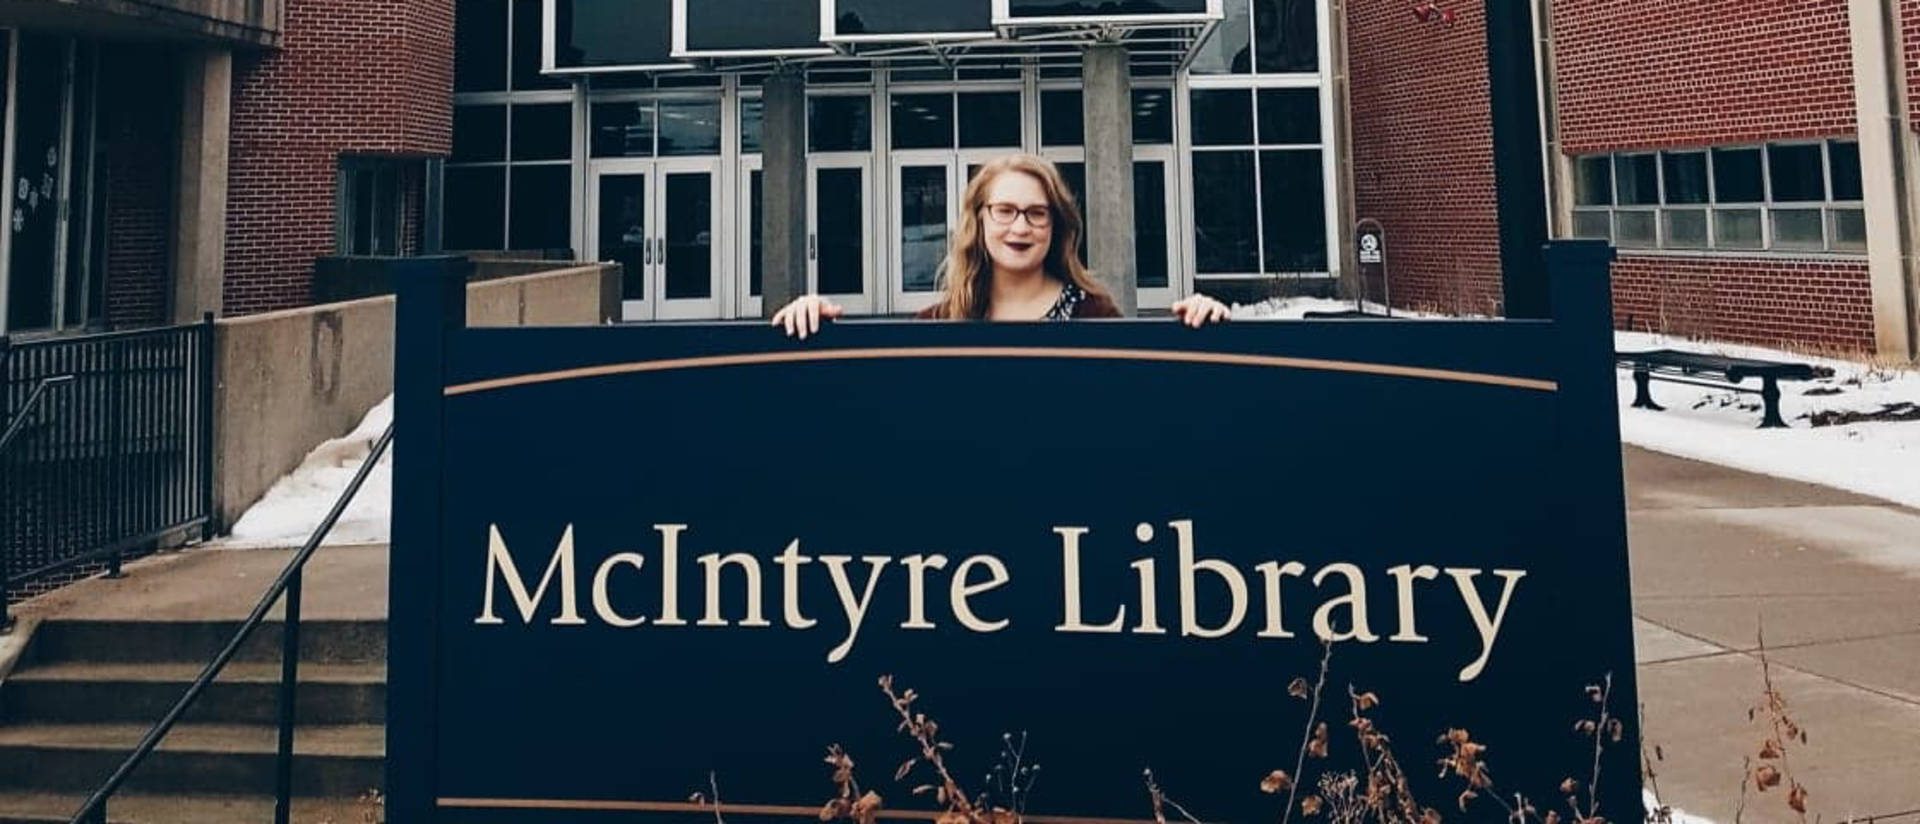 Katelyn Sabelko at McIntyre Library